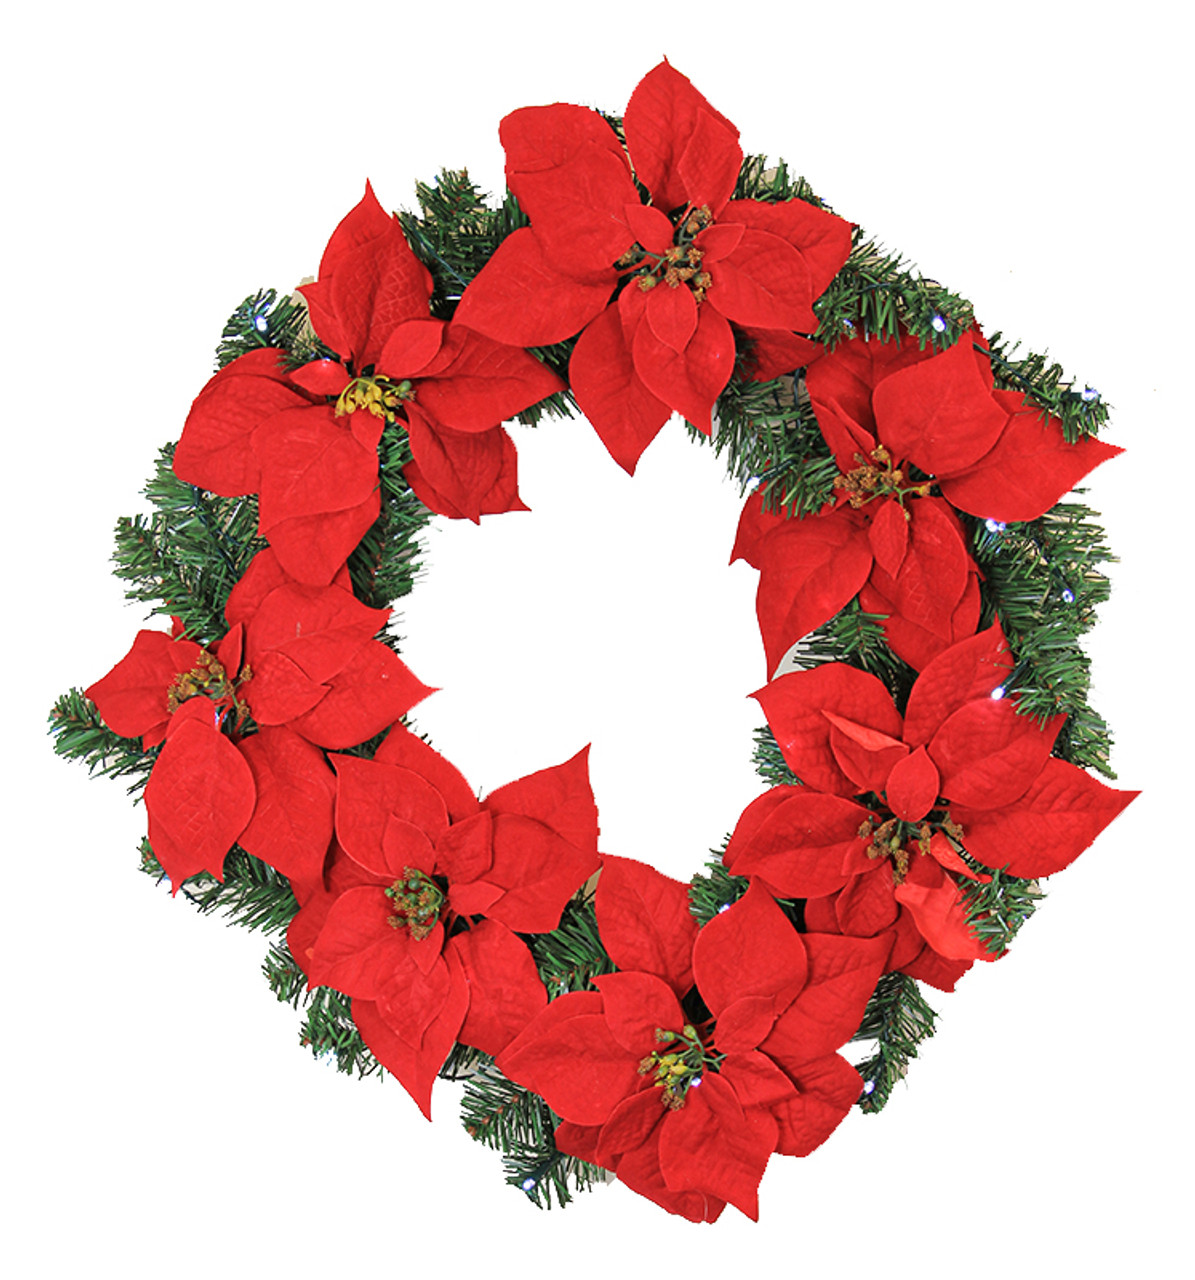 22 pre lit red artificial poinsettia christmas wreath clear led lights 30890583 - Poinsettia Christmas Decorations